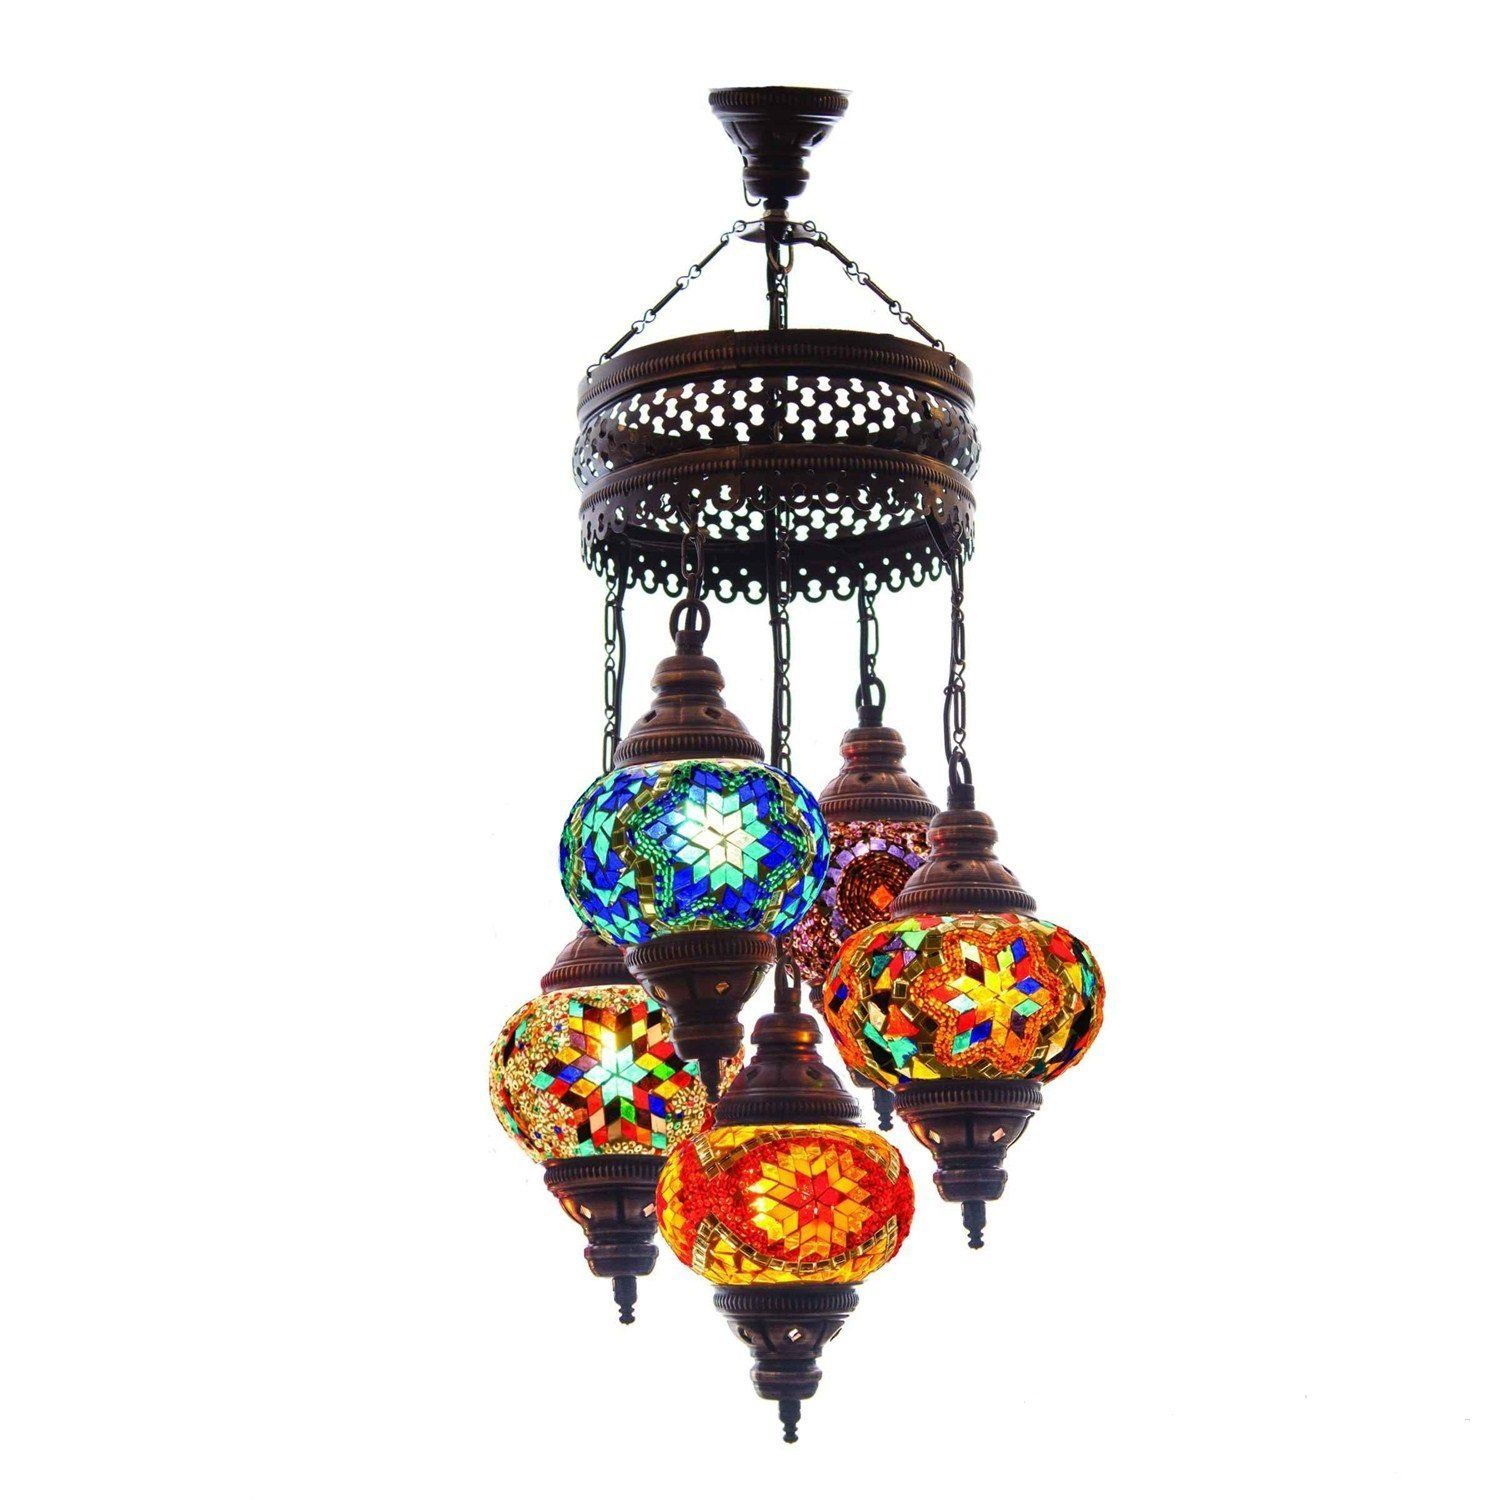 Turkish Authentic 16 Globe Mosaic Chandelier Mosaic Lamp Moroccan ...